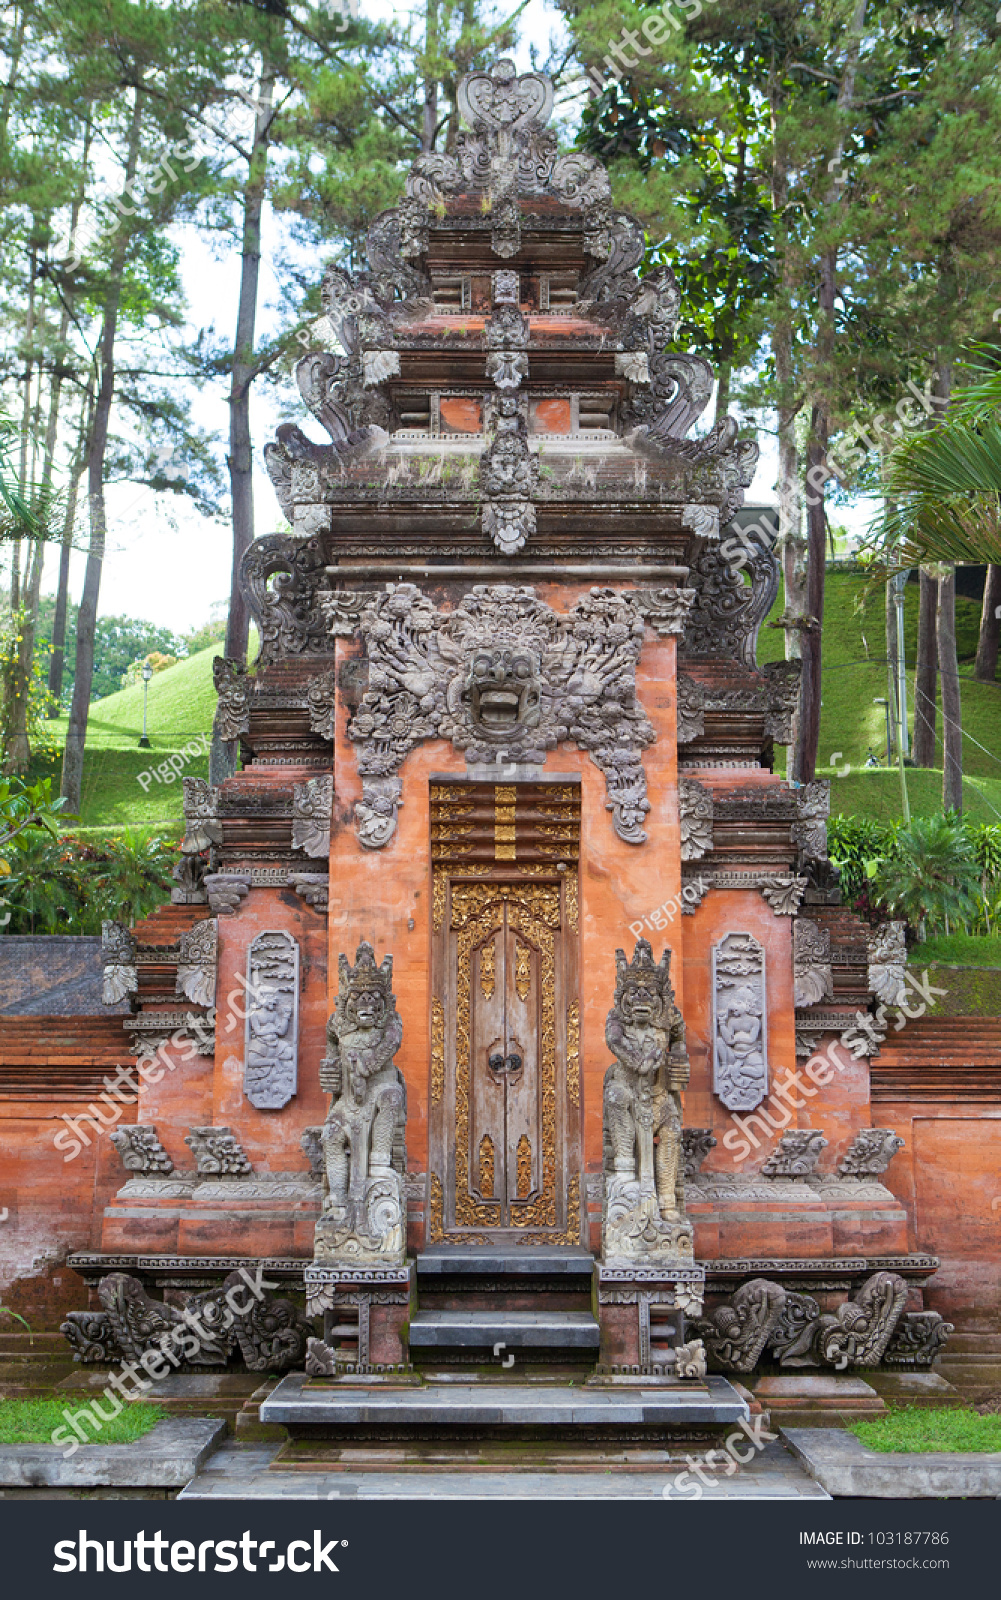 Balinese Style Entry Gate In Tirta Empul, Bali Indonesia ...